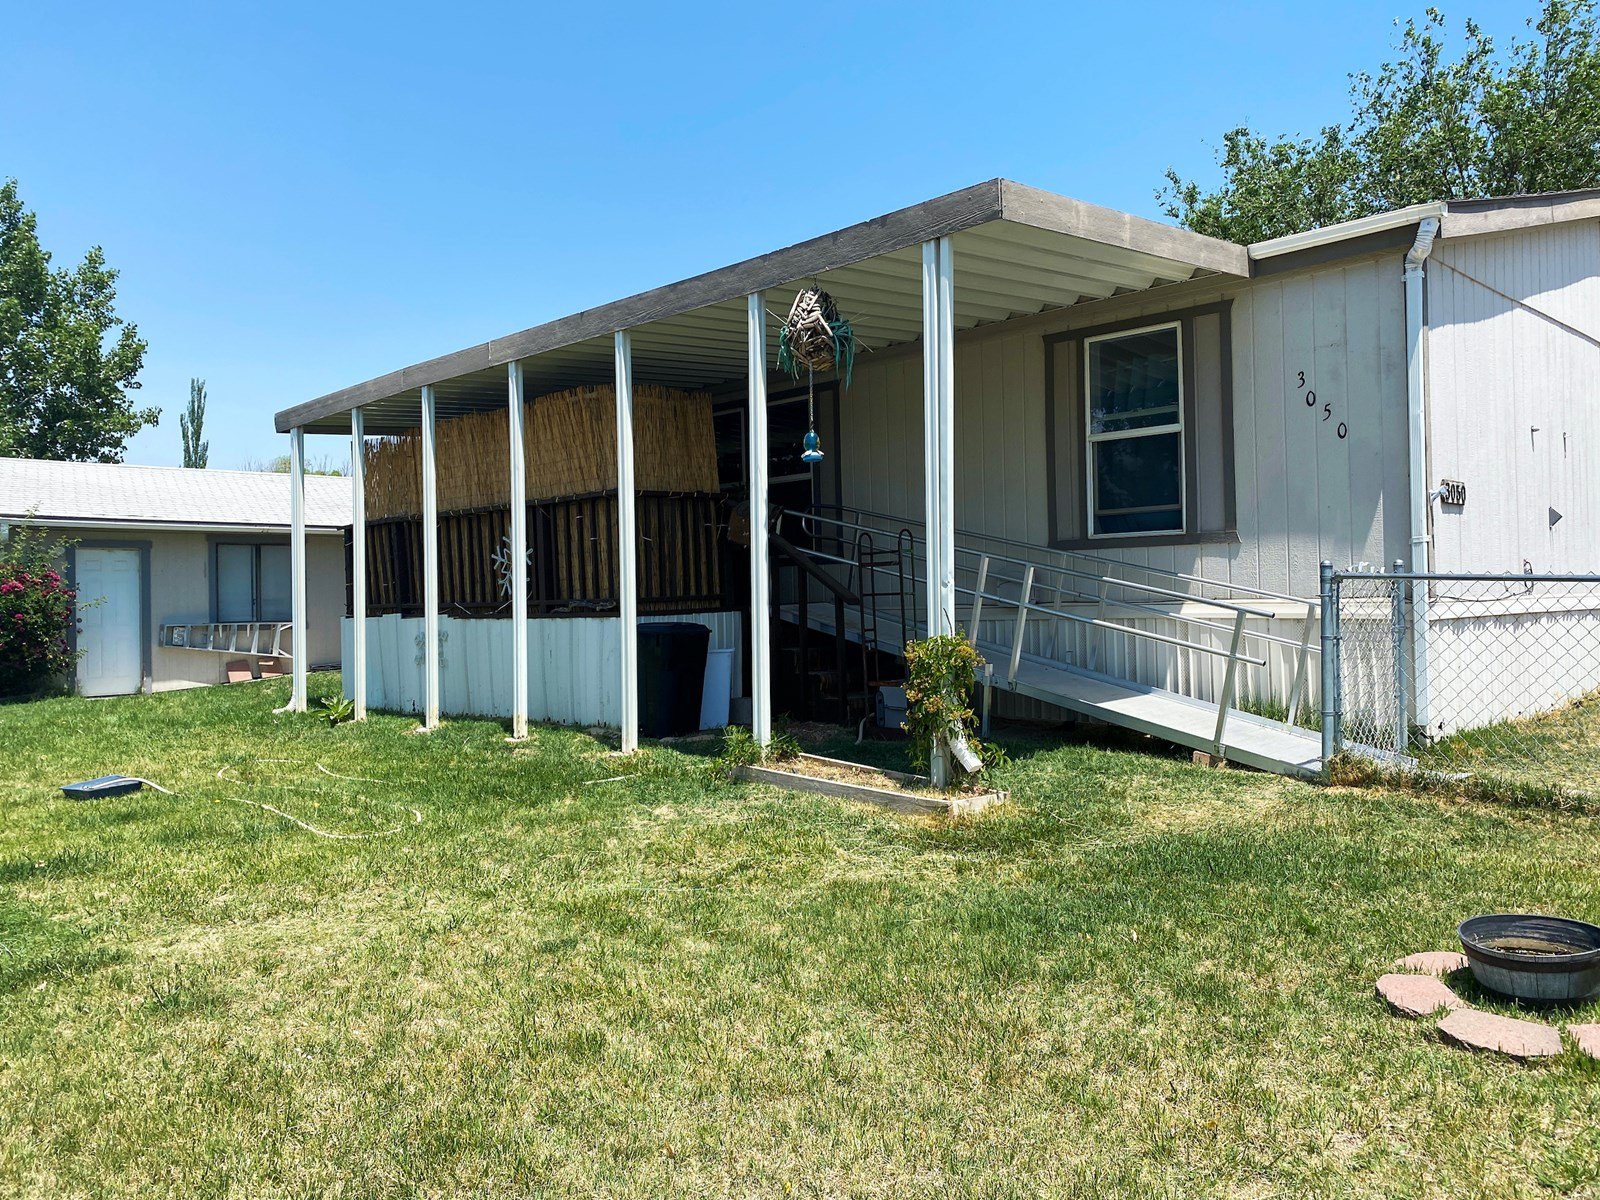 3 Bedroom Home For Sale in Grand Junction Colorado